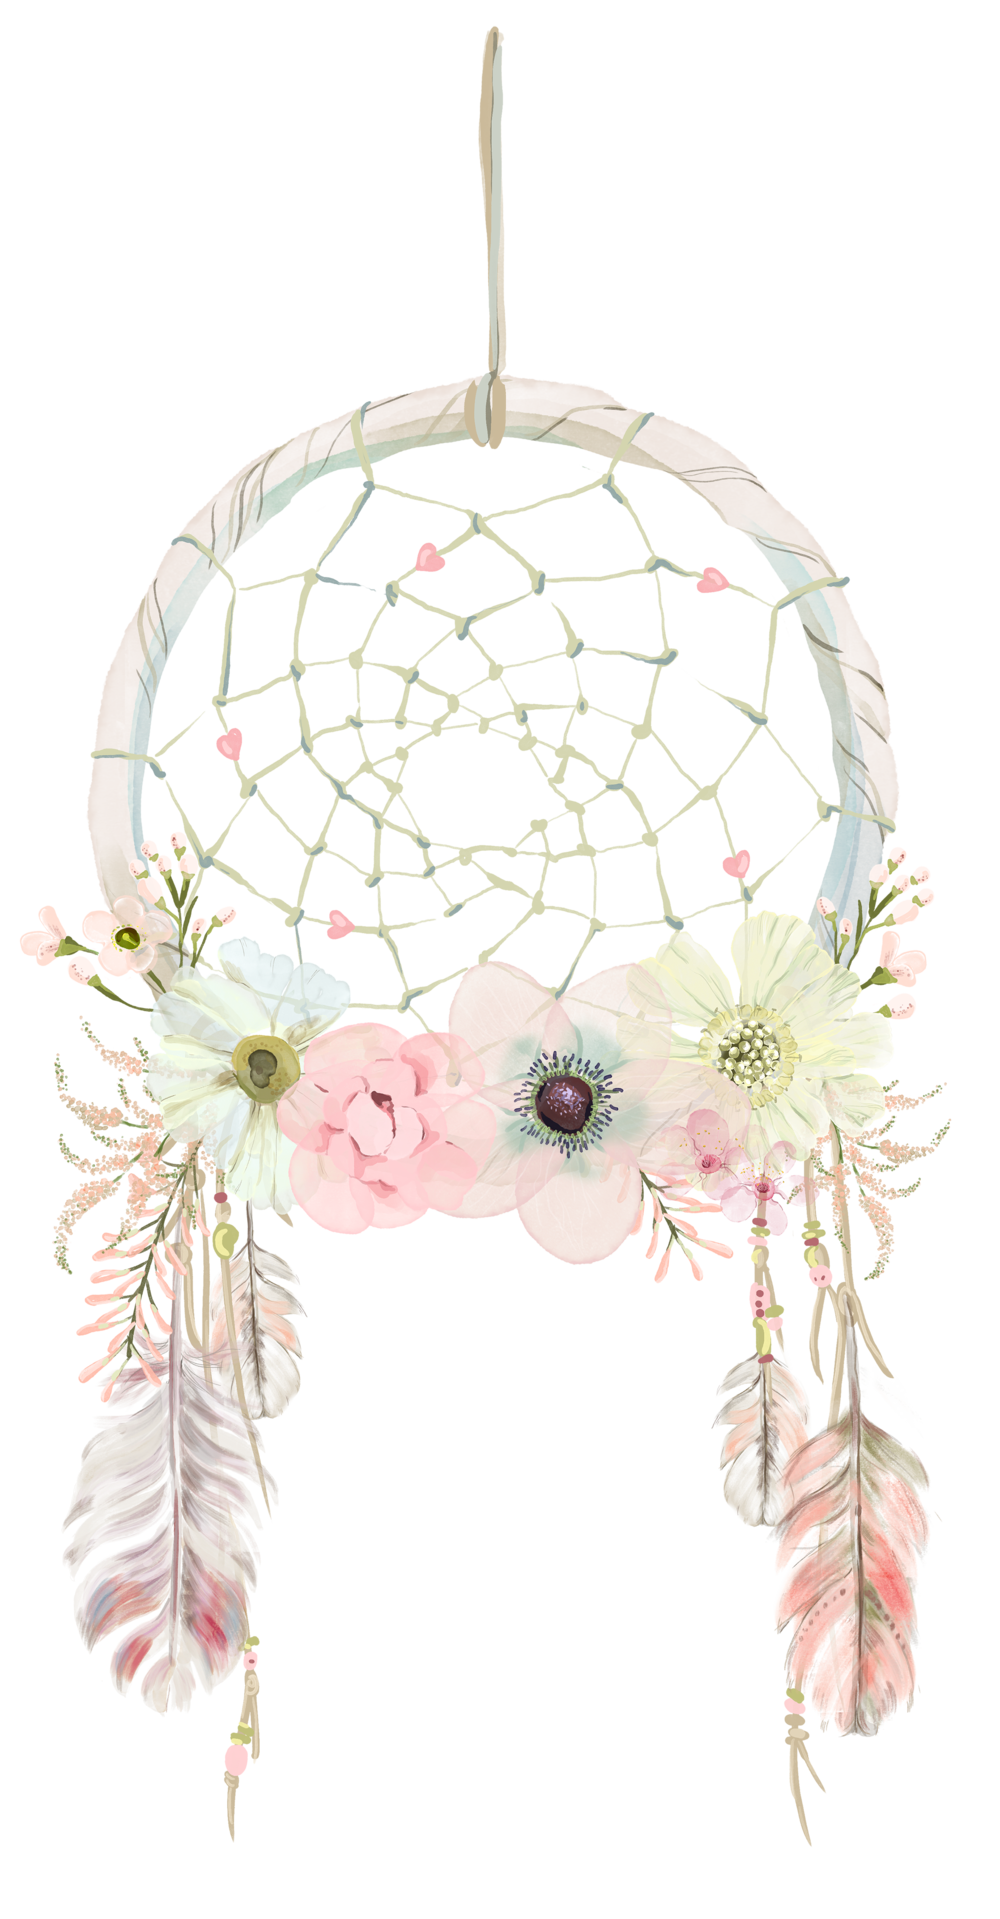 Dreamcatcher clipart dreamer. Dream catcher saferbrowser yahoo